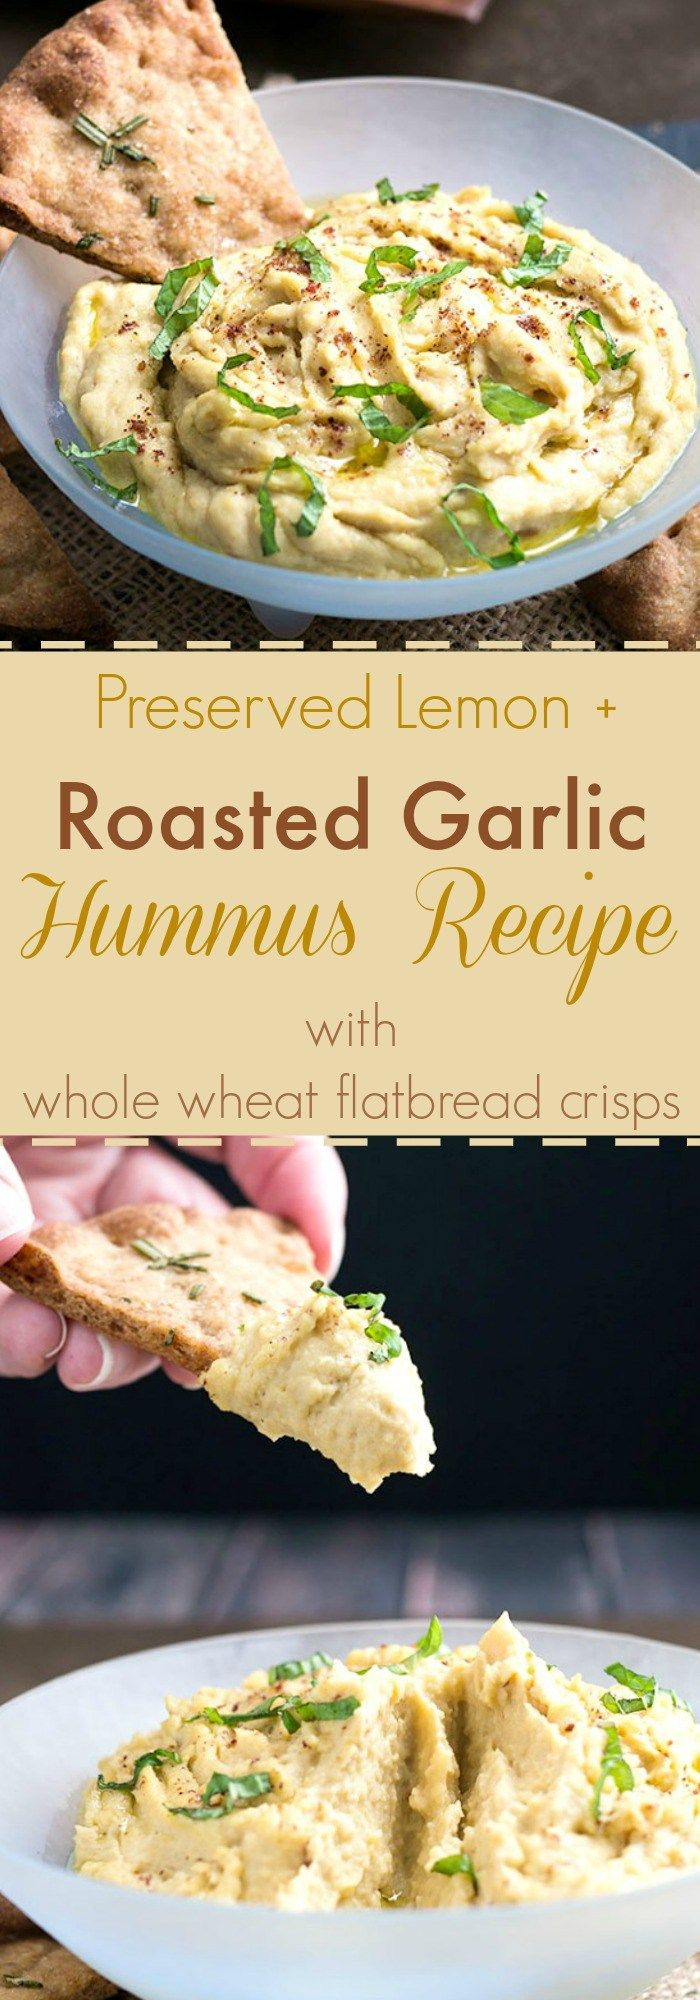 Preserved Lemon + Roasted Garlic Hummus Recipe with Whole Wheat Flatbread Crisps| Mildly sweet roasted garlic gets funked up with briny preserved lemon in this crazy good hummus dip recipe. Great for snacking or a light lunch and definitely worthy of your game day snack table.